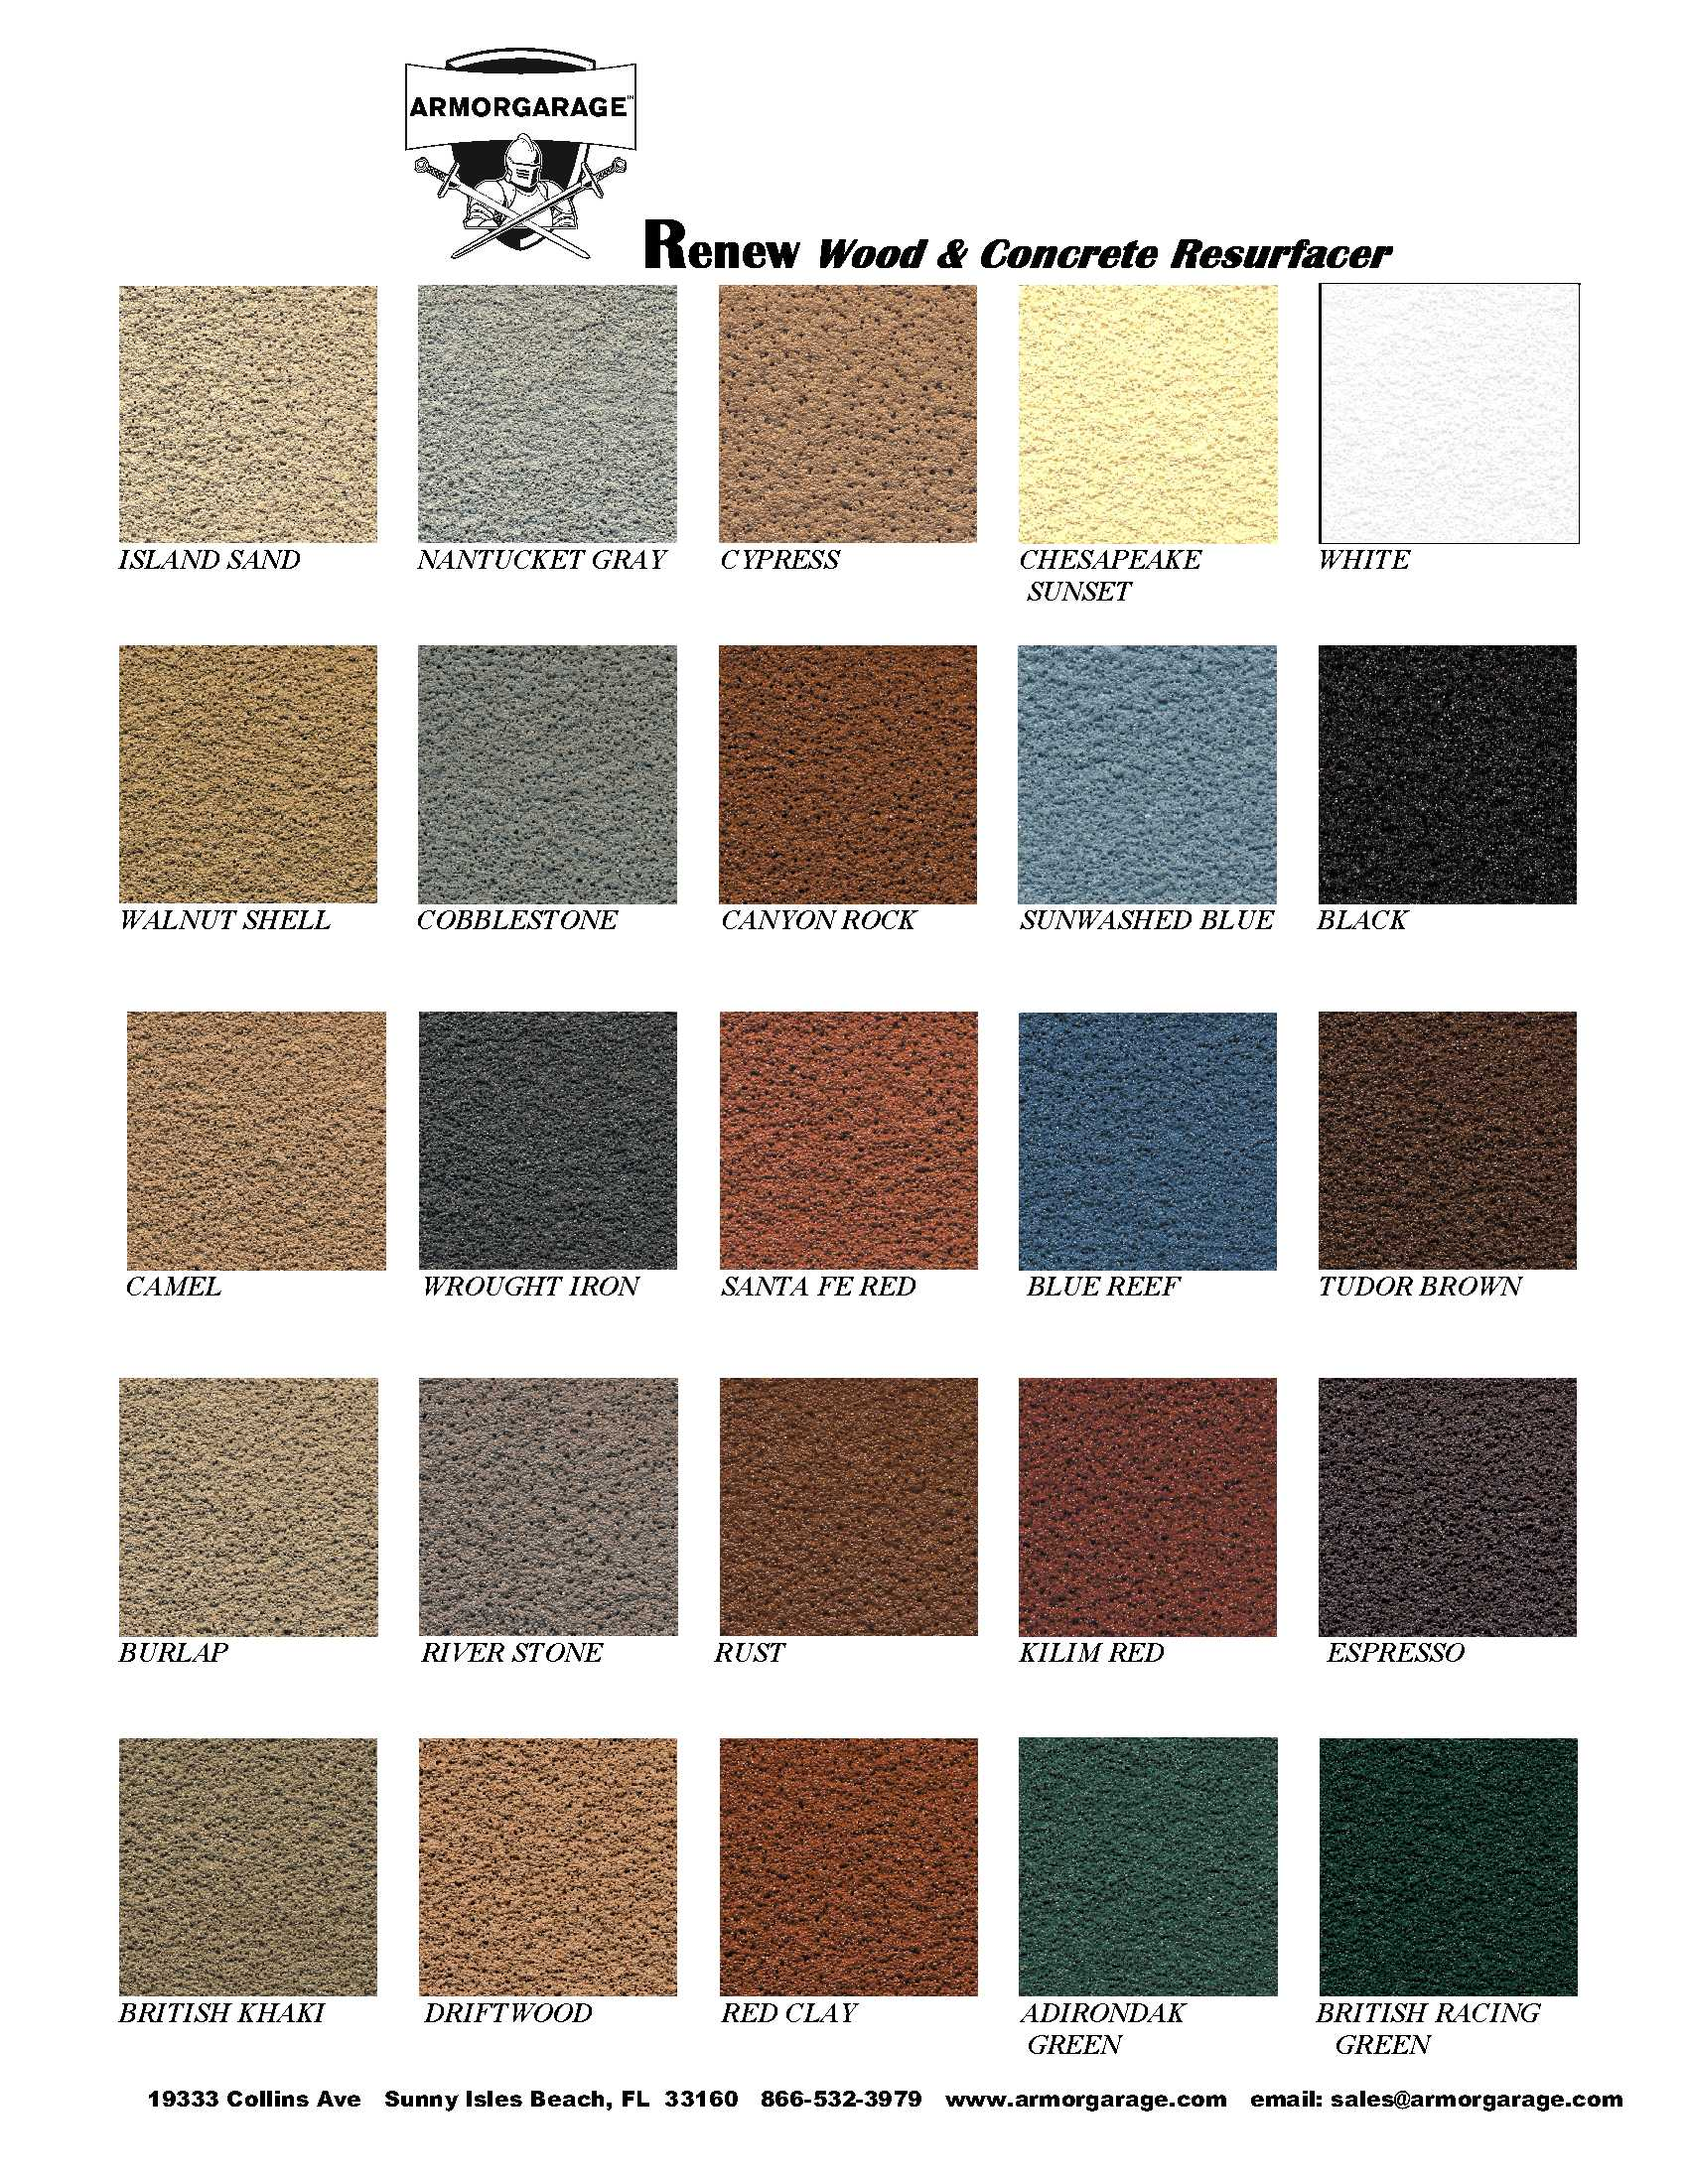 Deck coating renew deck coating for concrete and wood deck deck coating renew deck coating for concrete and wood deck restoration deck paint color selection nvjuhfo Image collections